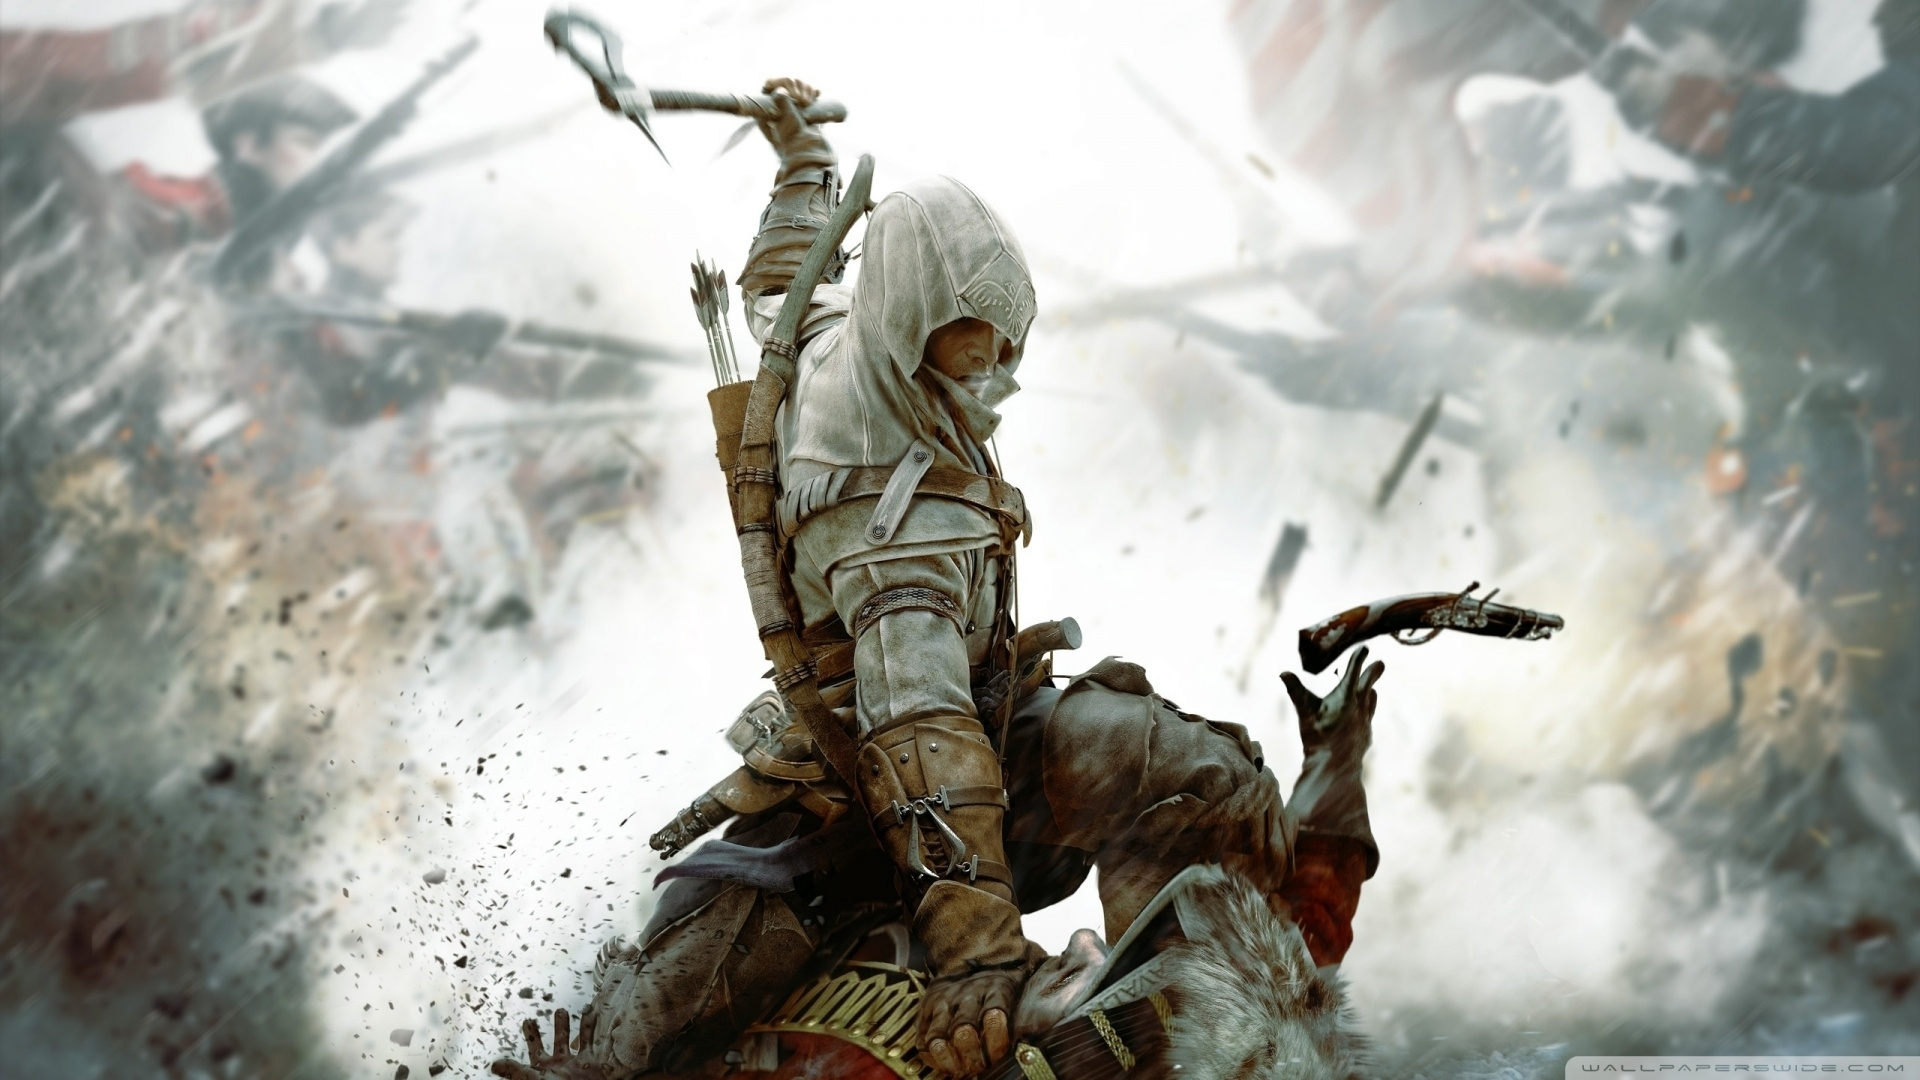 assassins creed iii 3-wallpaper-1920x1080 - 10 000 fonds d'écran hd